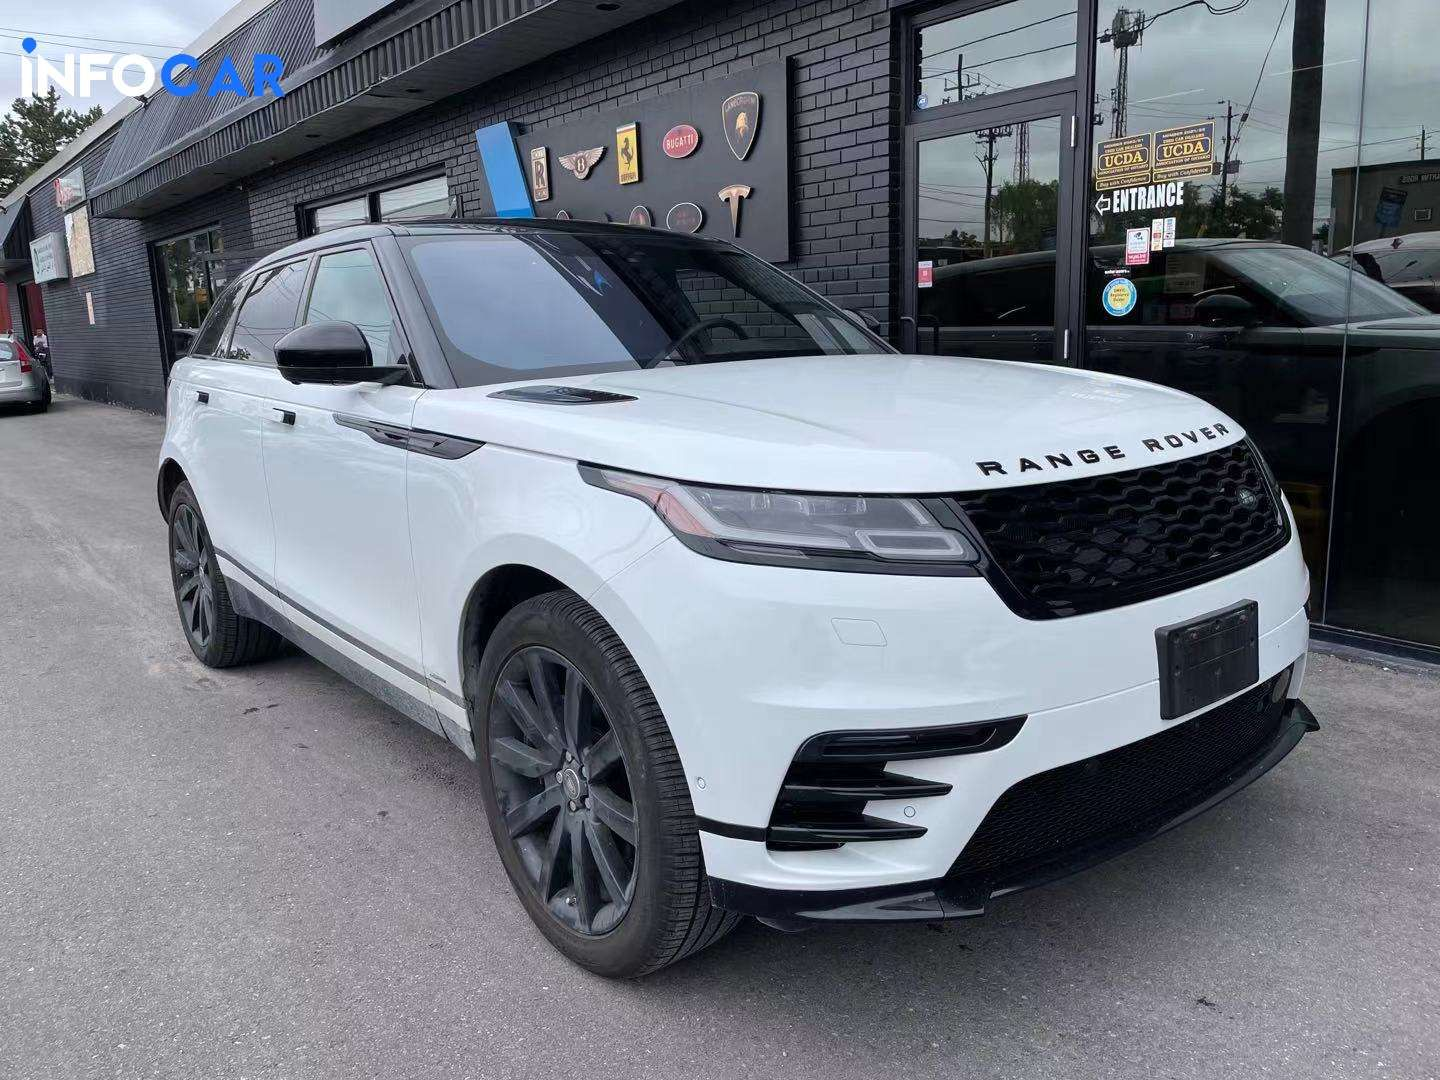 2019 Land Rover Range Rover Velar R—Dynamic - INFOCAR - Toronto's Most Comprehensive New and Used Auto Trading Platform